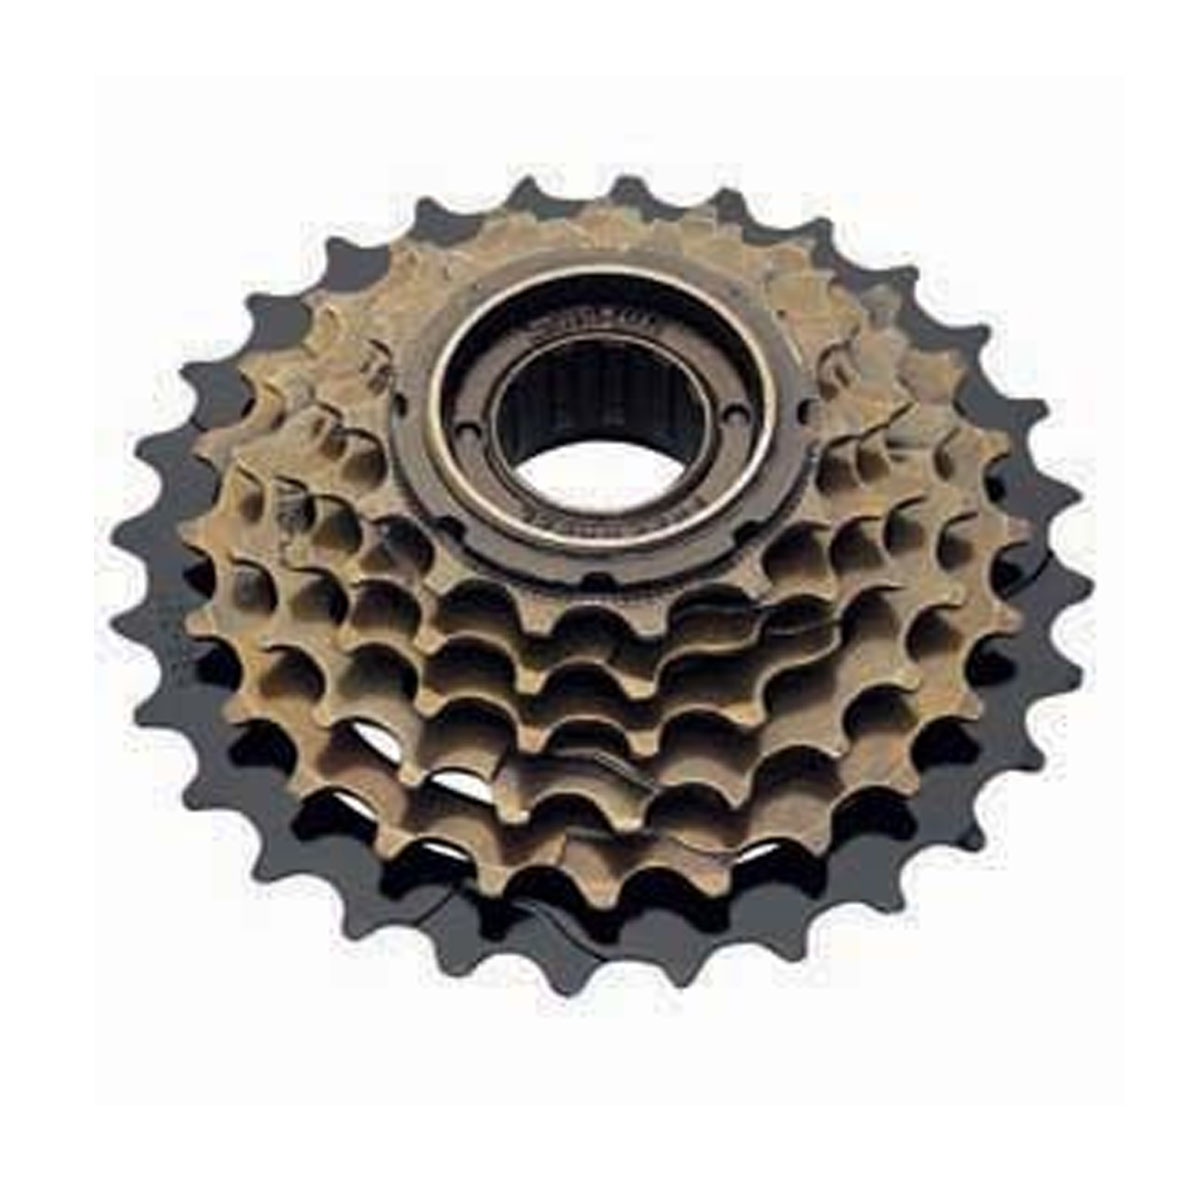 SunRun Six Speed Freewheel, 14-28T, Brown